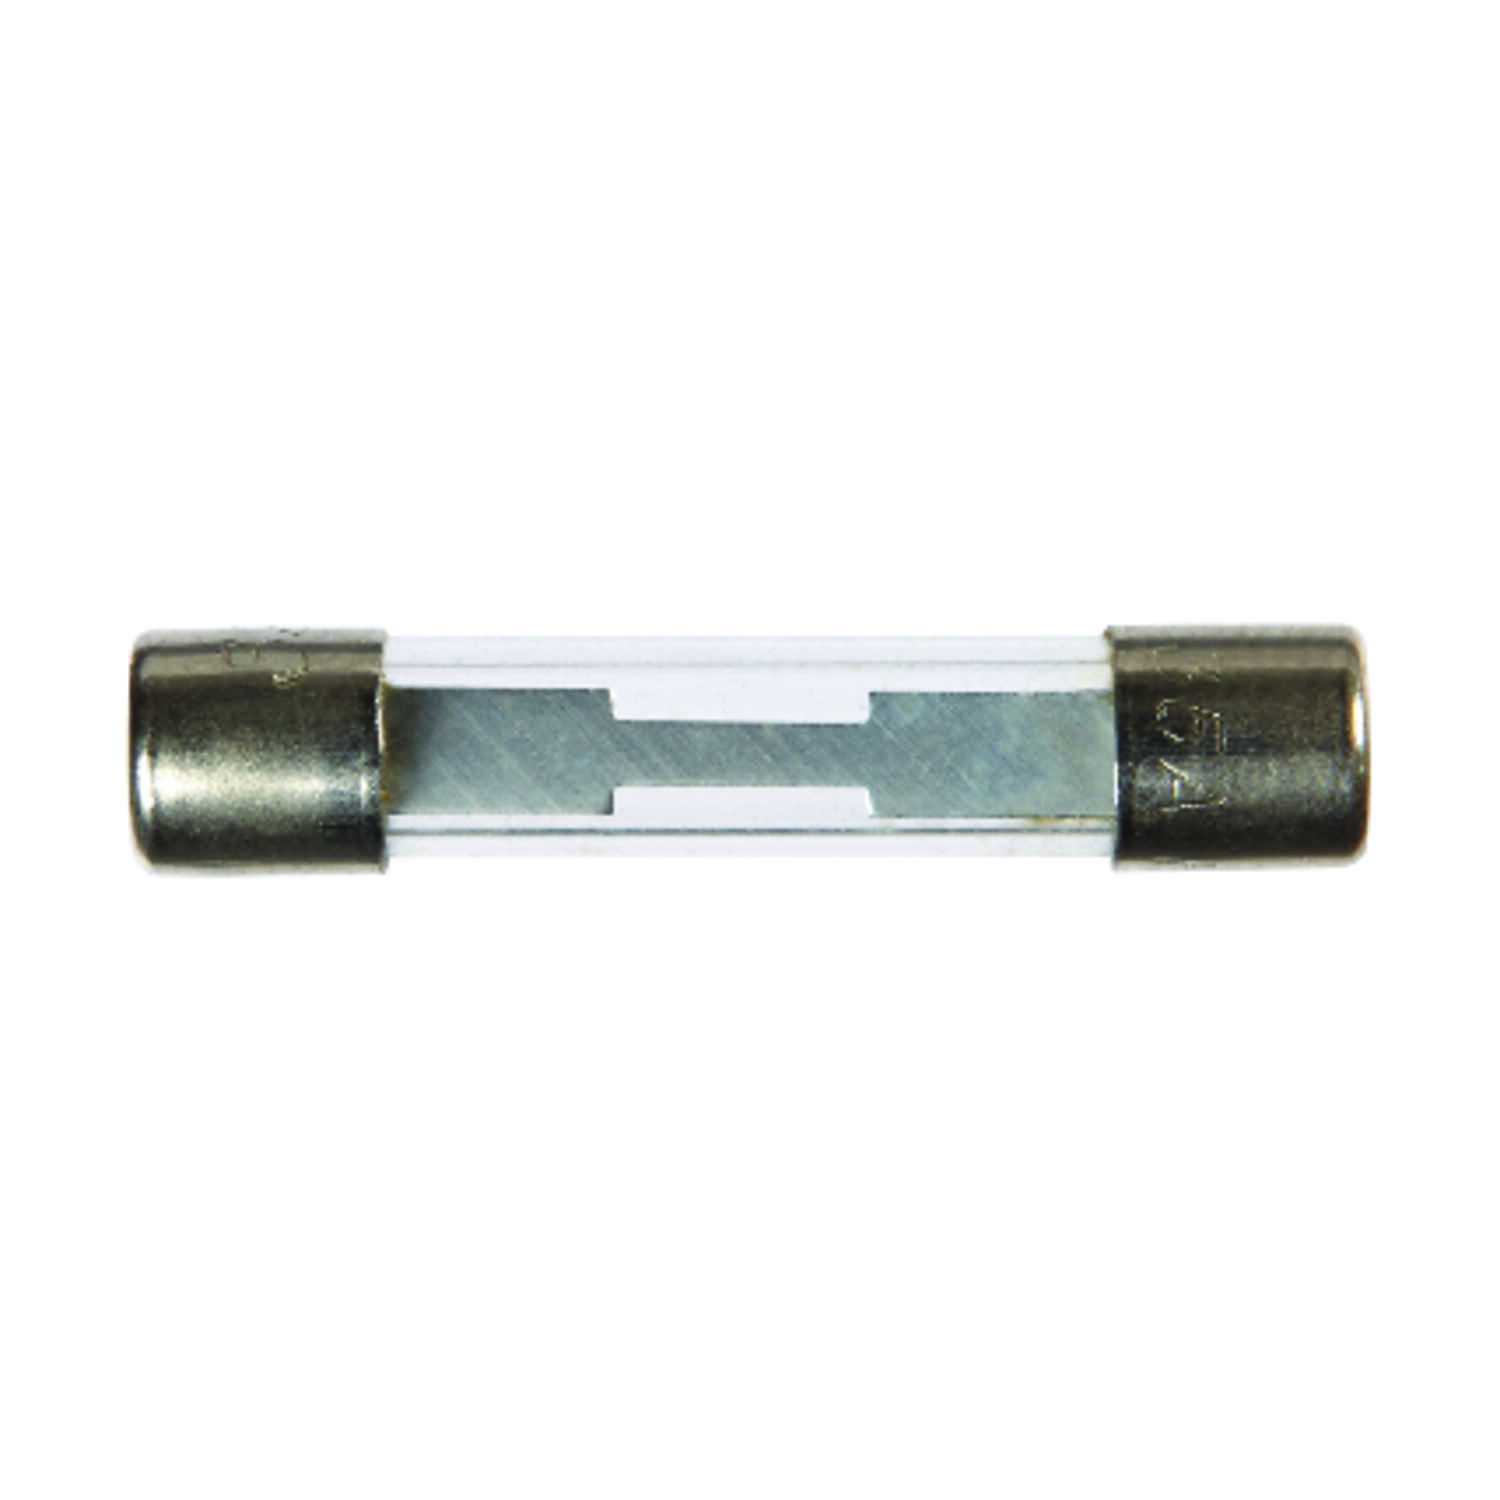 Jandorf  AGC  35 amps 32 volts Glass  Fast Acting Fuse  4 pk